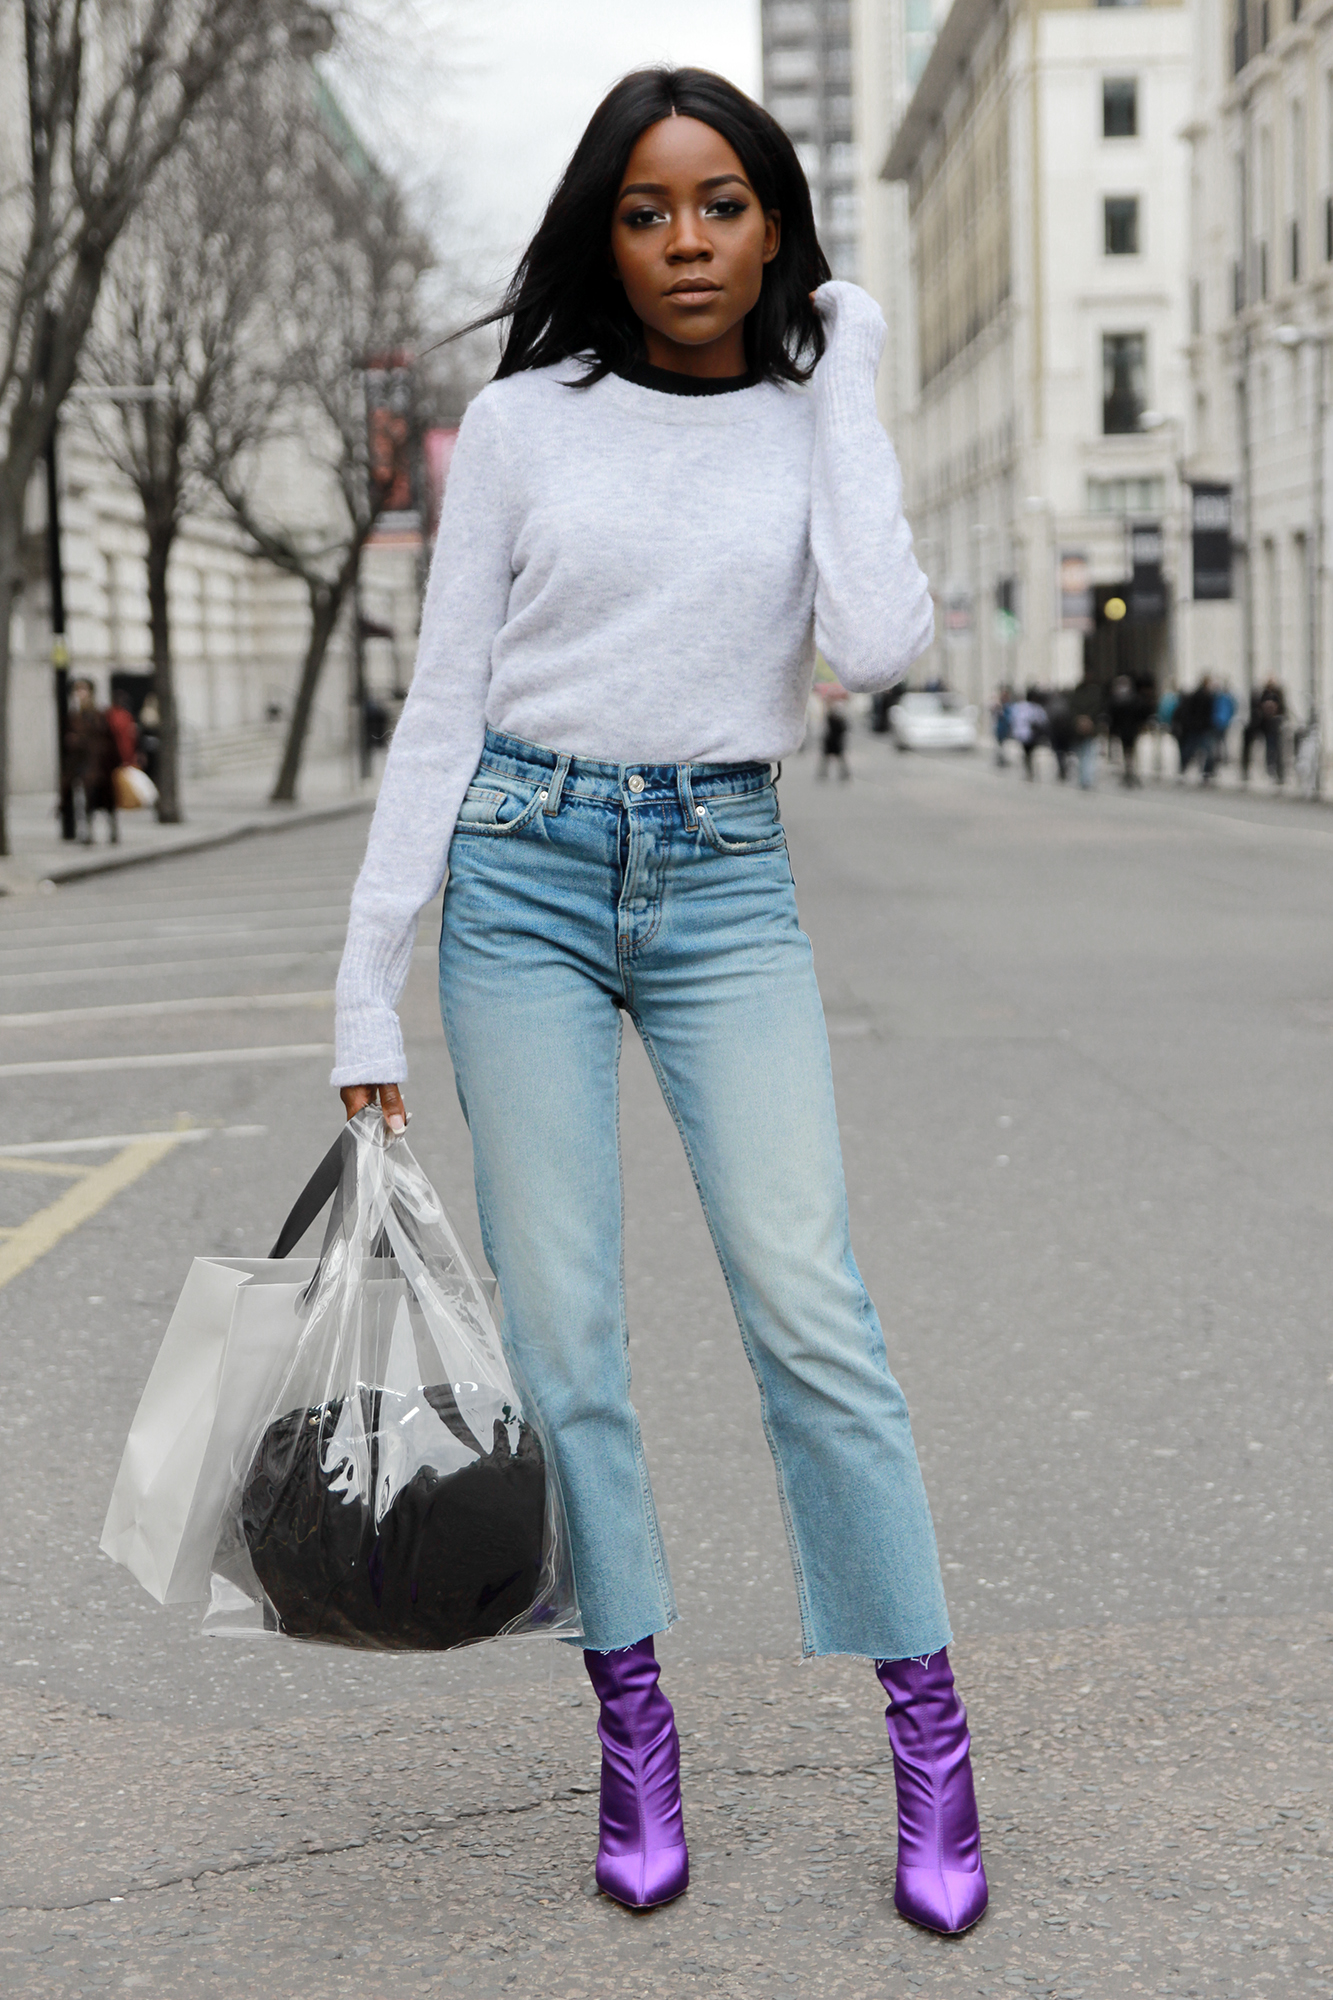 jeans-that-make-legs-longer